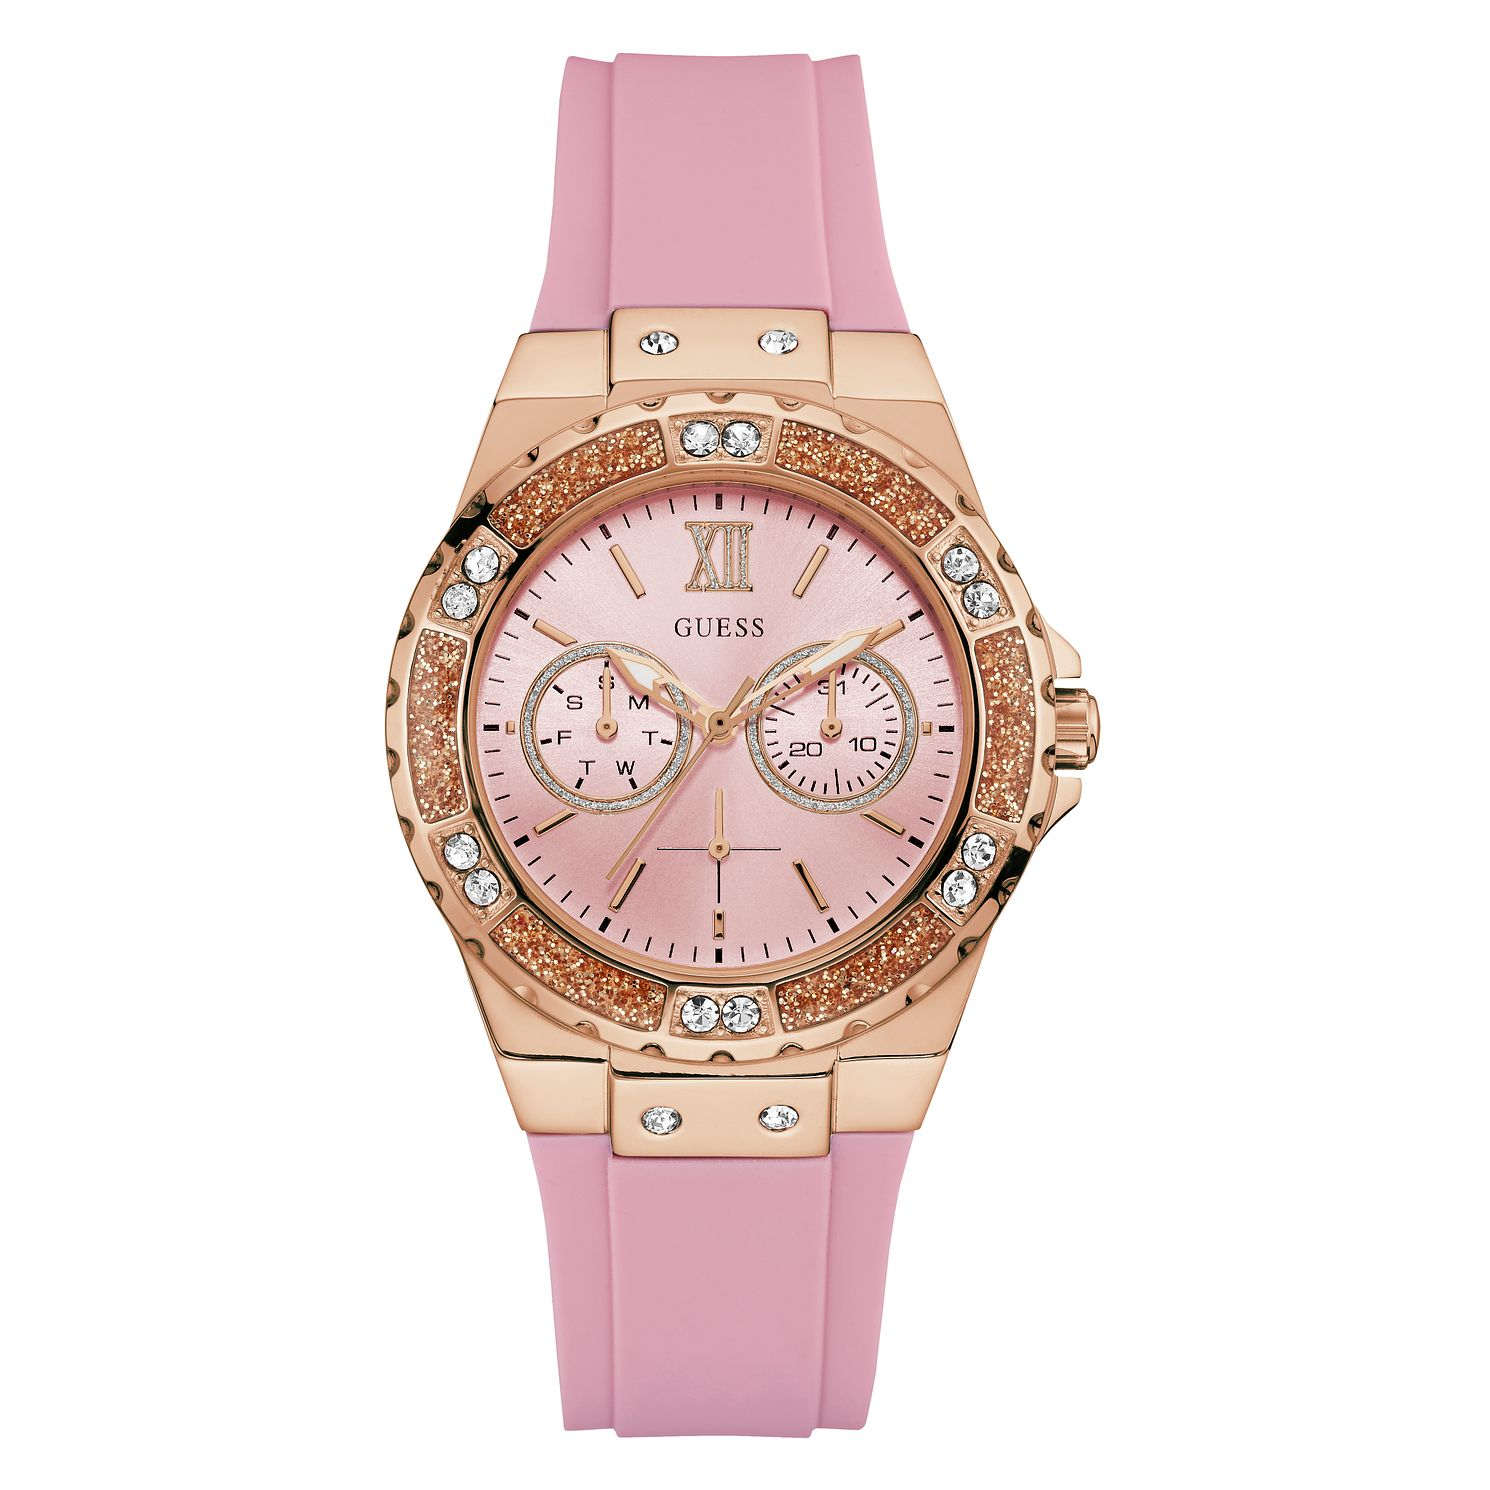 Guess Ladies' Pink Silicone Strap Watch - Product number 8059322